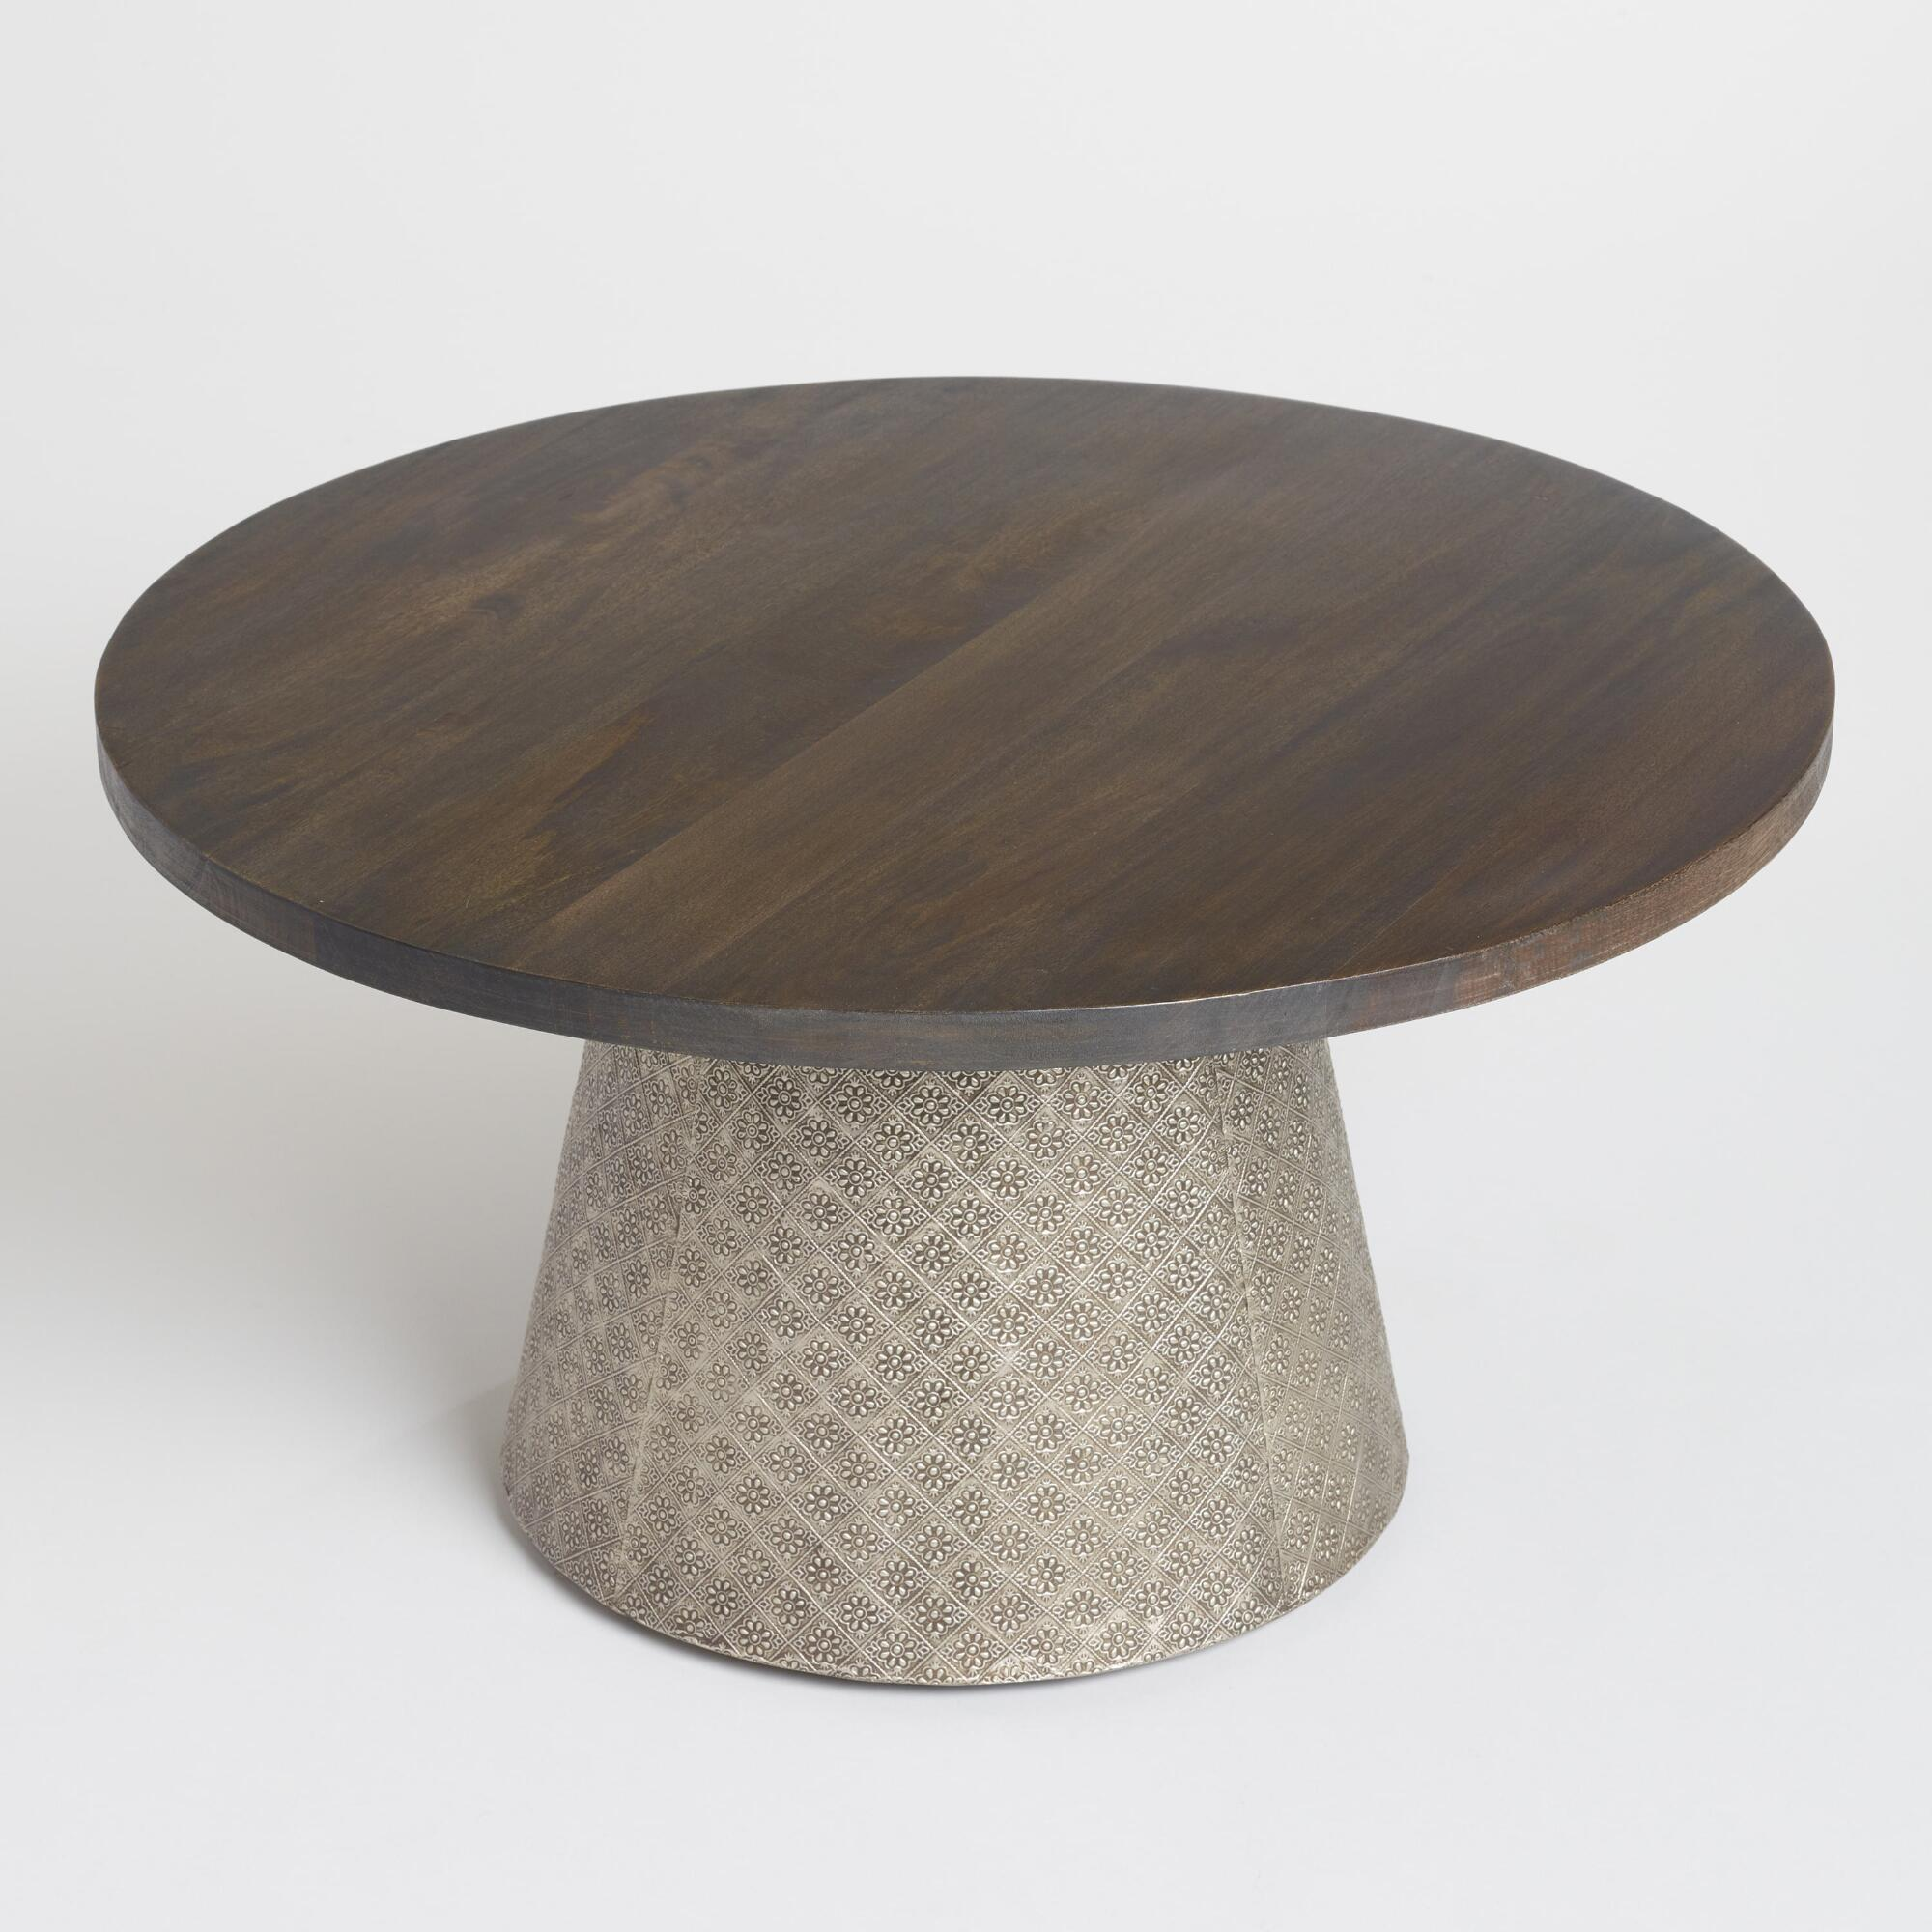 coffee tables end accent world market iipsrv fcgi parquet table target round wood and embossed metal kiran concrete patio garden furniture small kitchen diner chair room